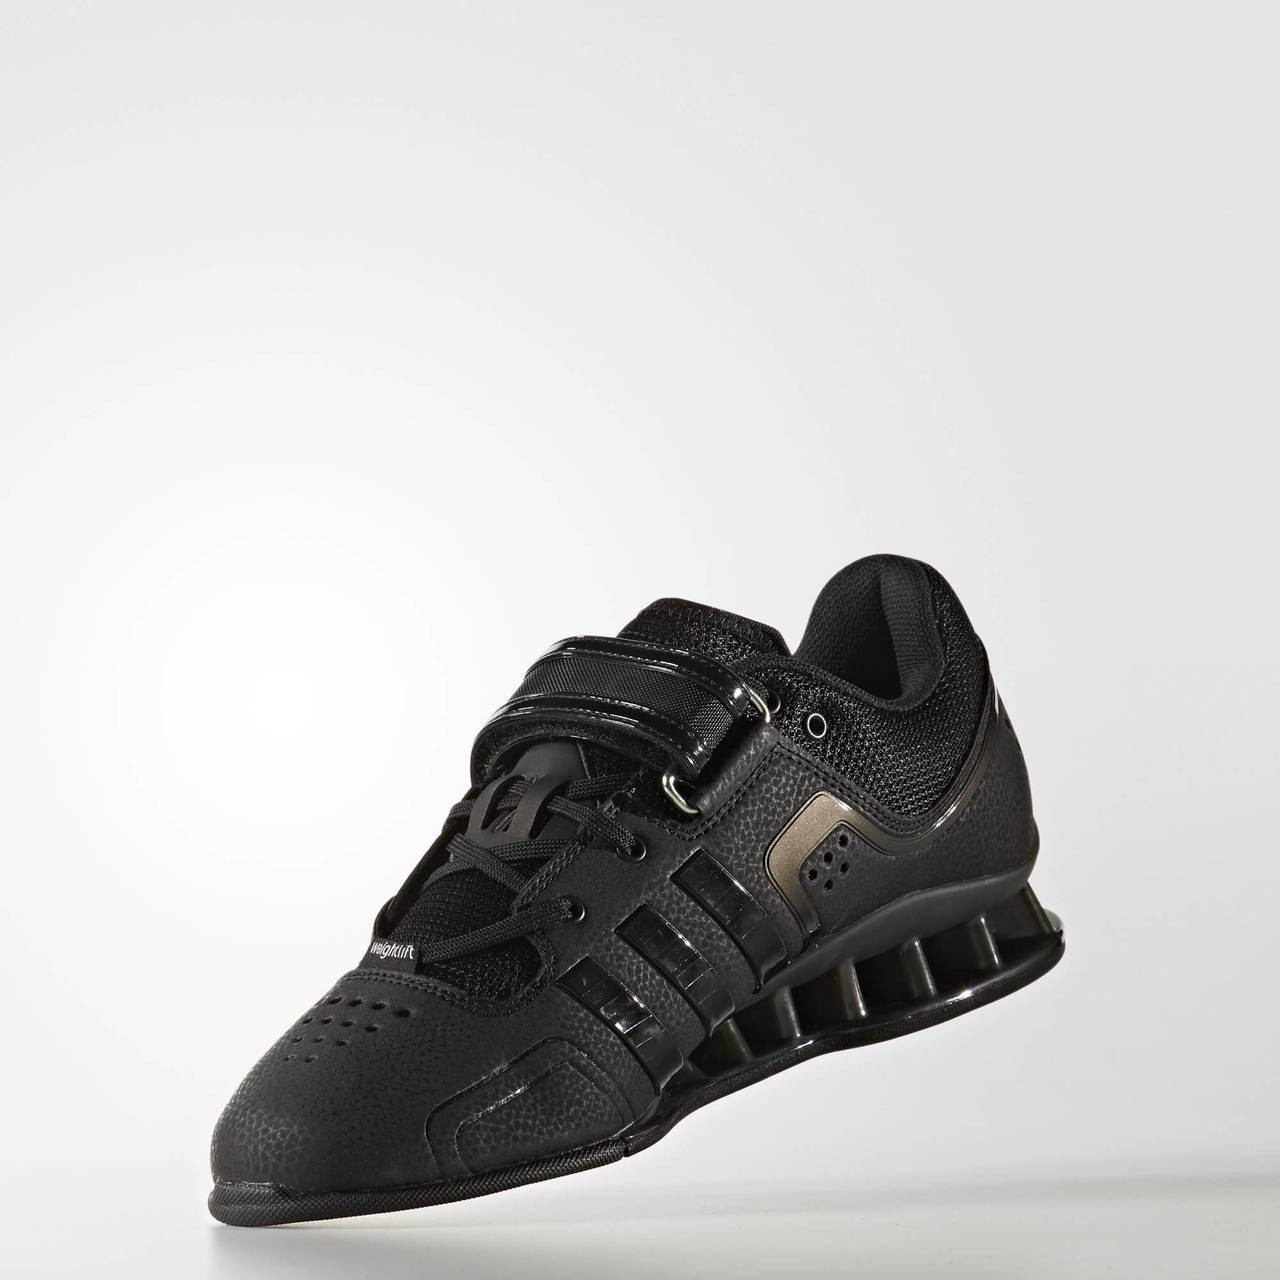 online retailer 1dd67 1e020 Adidas AdiPower Weightlifitng Shoes Black (BA7923) - www.BattleBoxUk.com